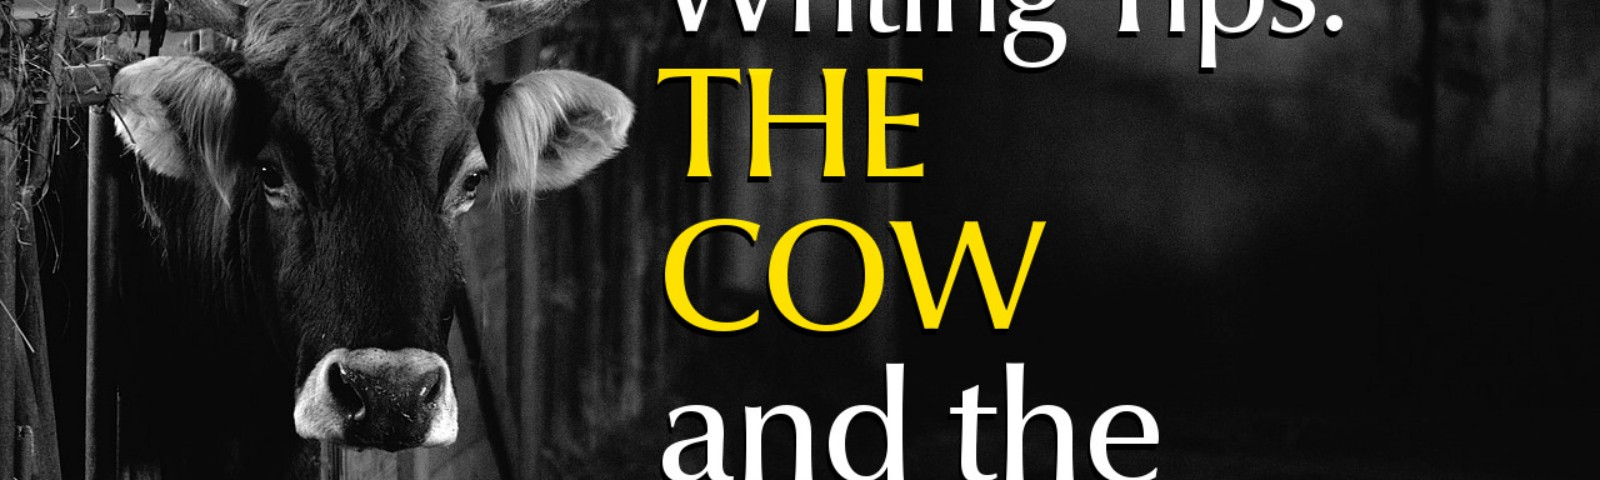 Writing Tips: The Cow and The Cat - Great Short Story